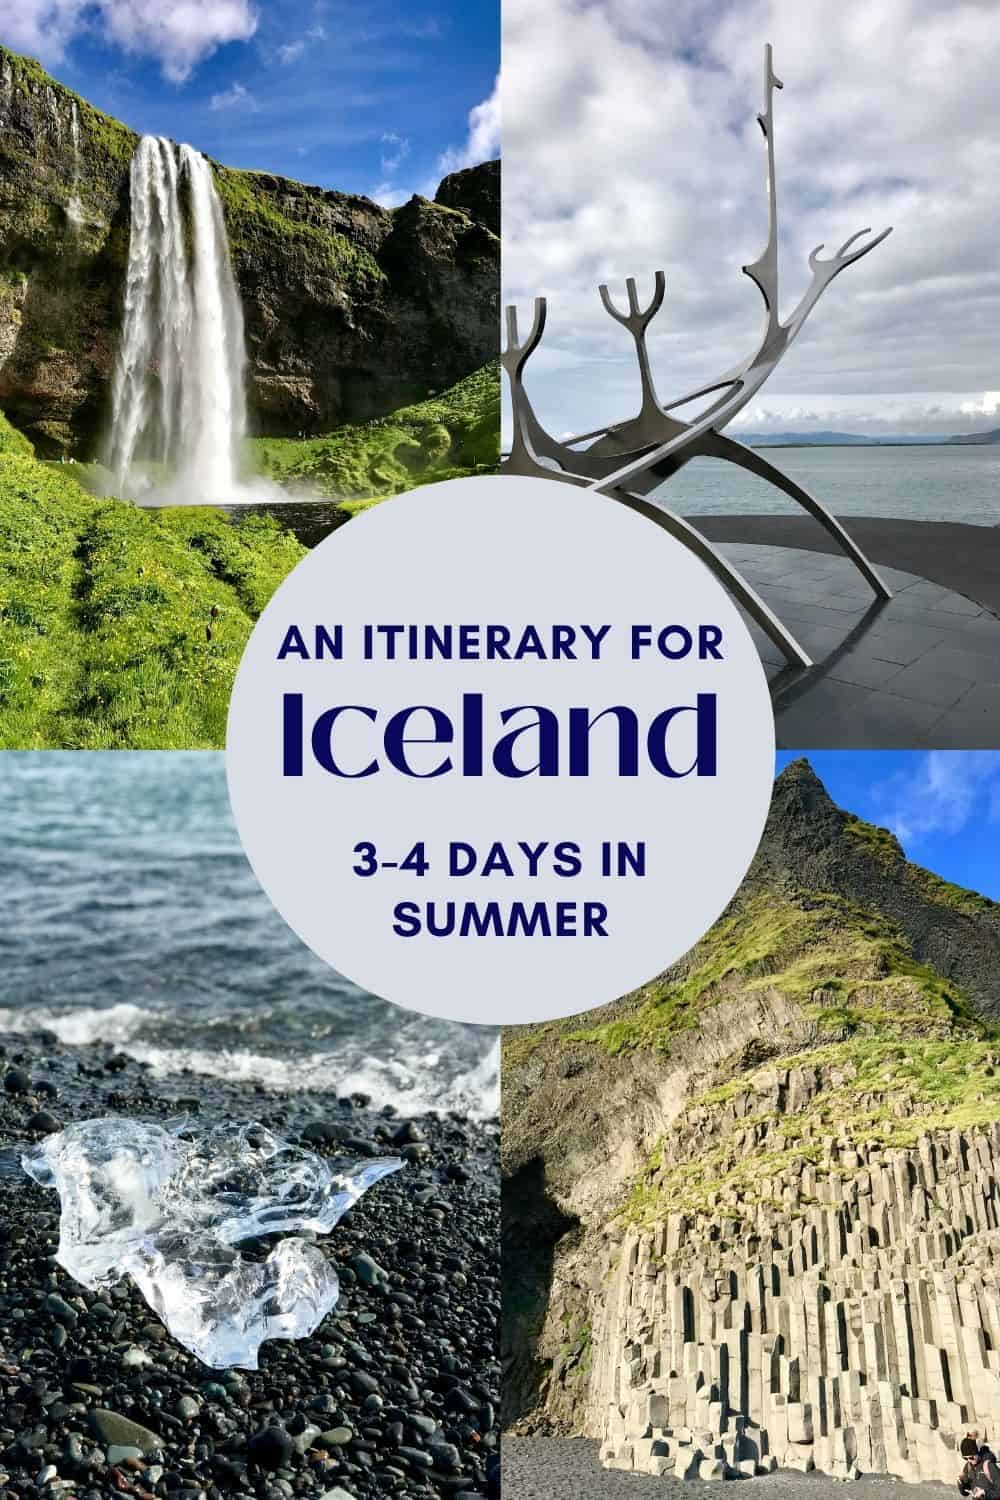 Iceland Itinerary: What to Do in Iceland in Summer   A super in-depth post to help you plan your trip to Iceland...things to do in Iceland during Midnight Sun, Iceland driving tips & rental cars, how to structure your itinerary. What to see on the Golden Circle, things to do on Iceland's South Coast, Reykjavik tips, & more! #iceland #roadtrip #goldencircle #icelanditinerary #vik #jokusarlon #glacierhiking #silfrasnorkeling